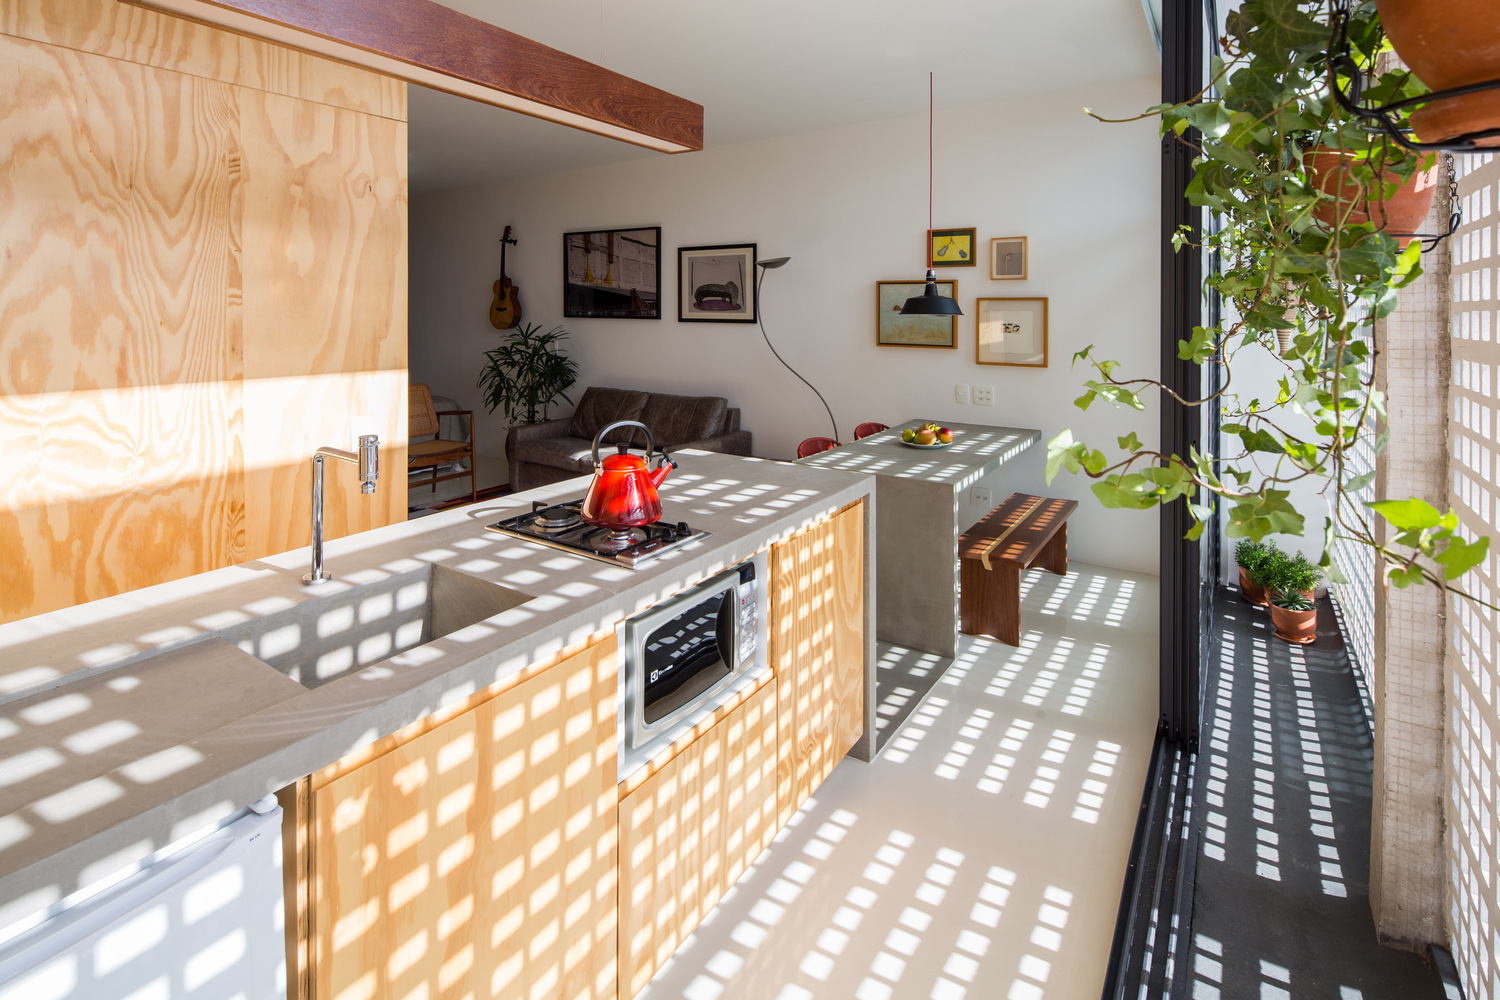 Concrete Countertops: Brutalism in the Kitchen